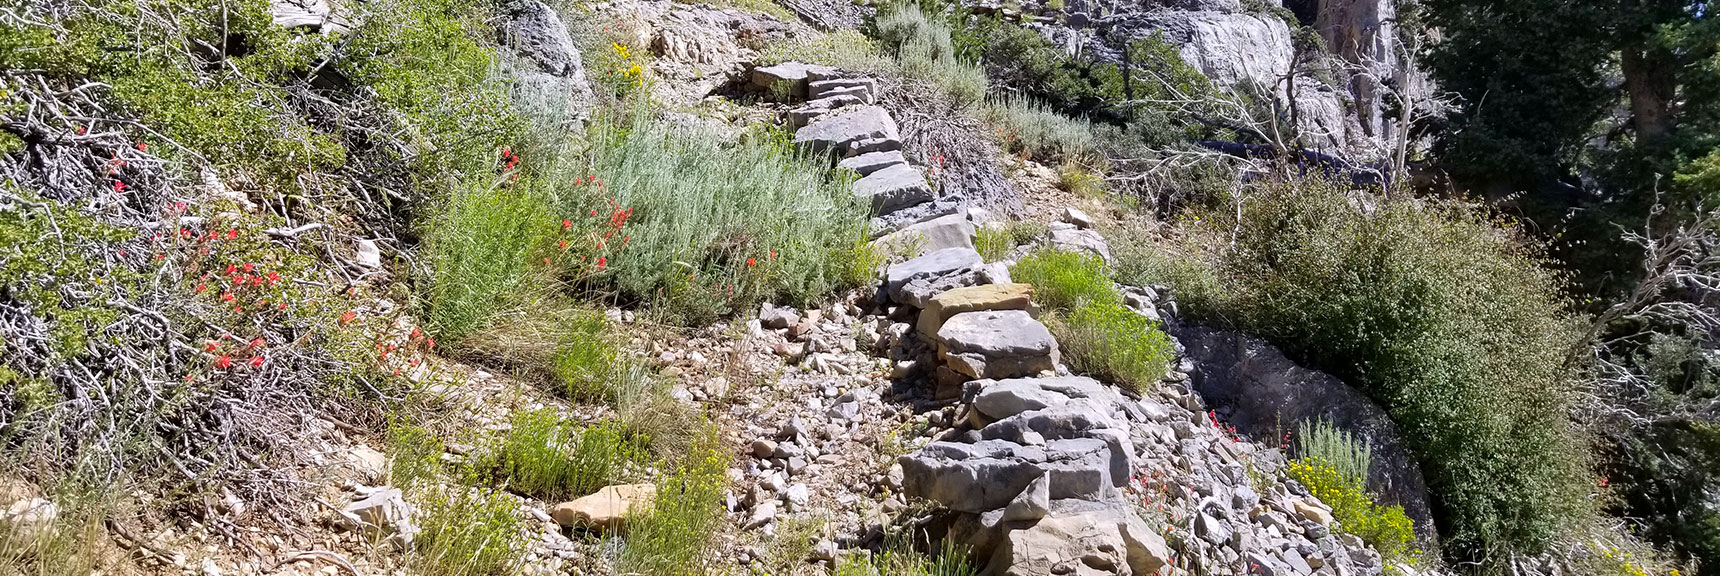 A Well Constructed But Poorly Maintained Trail Near the Harris Mountain Saddle, Nevada